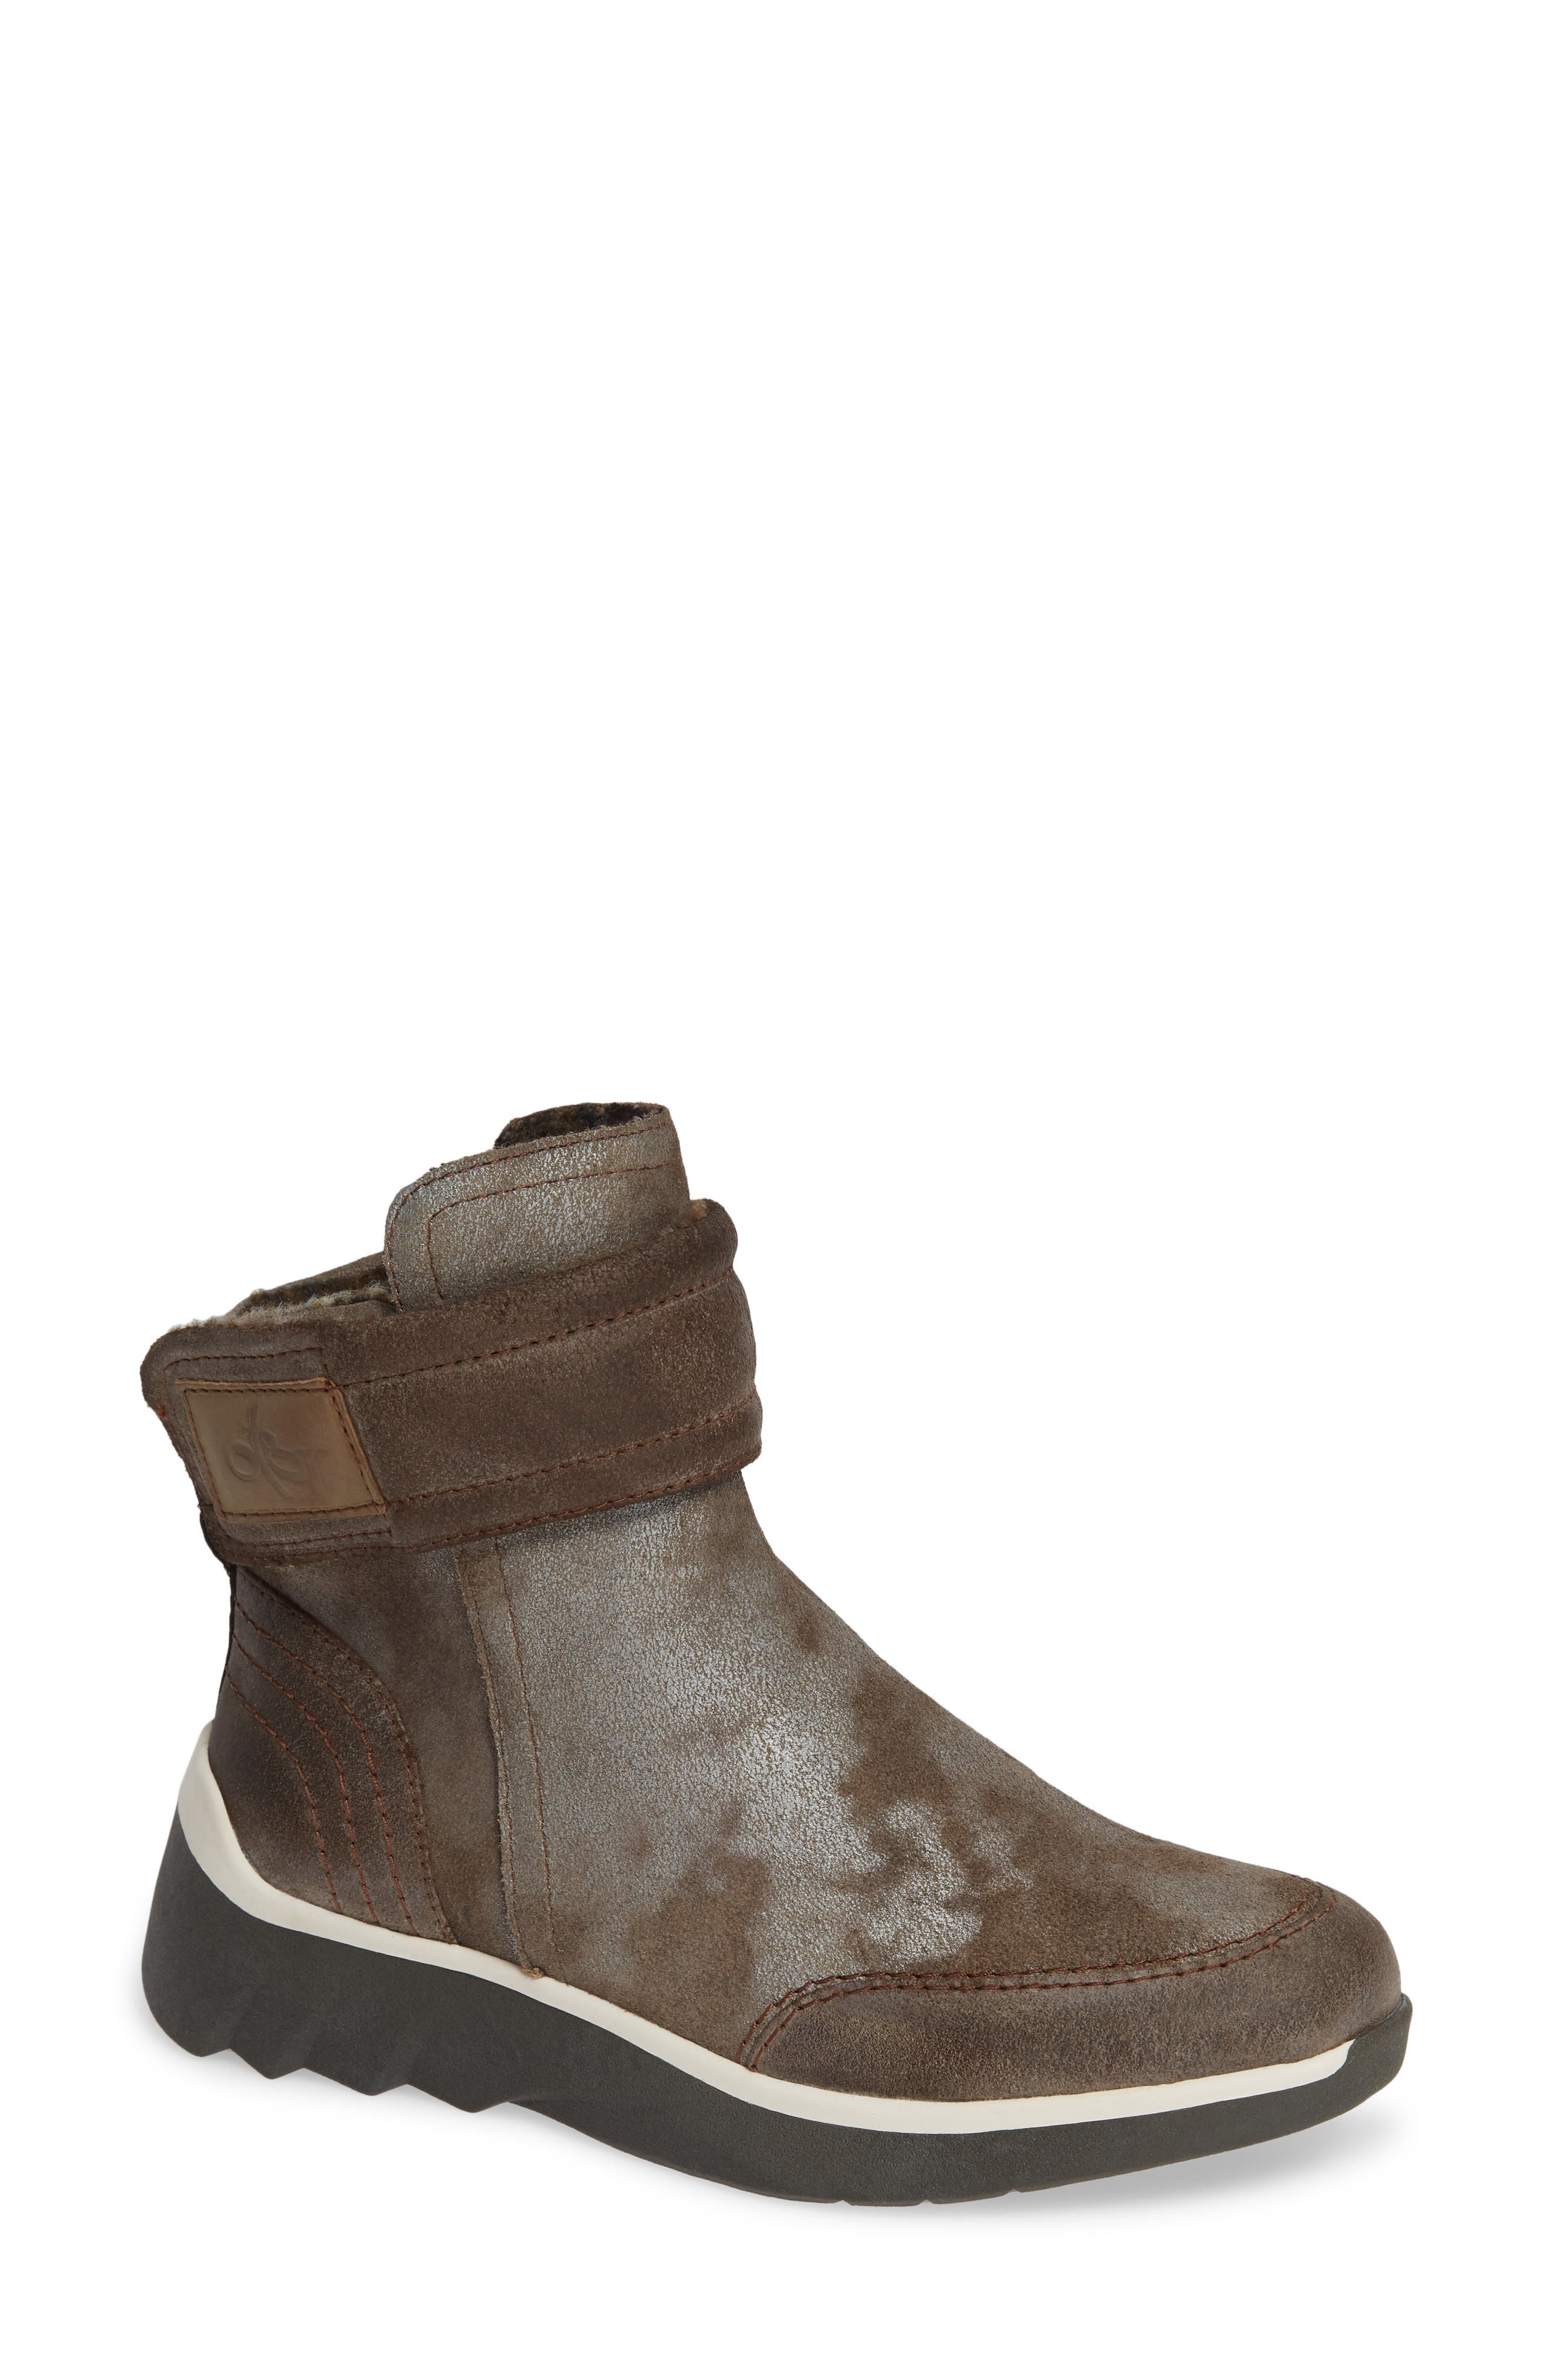 Otbt Outing Bootie- Brown